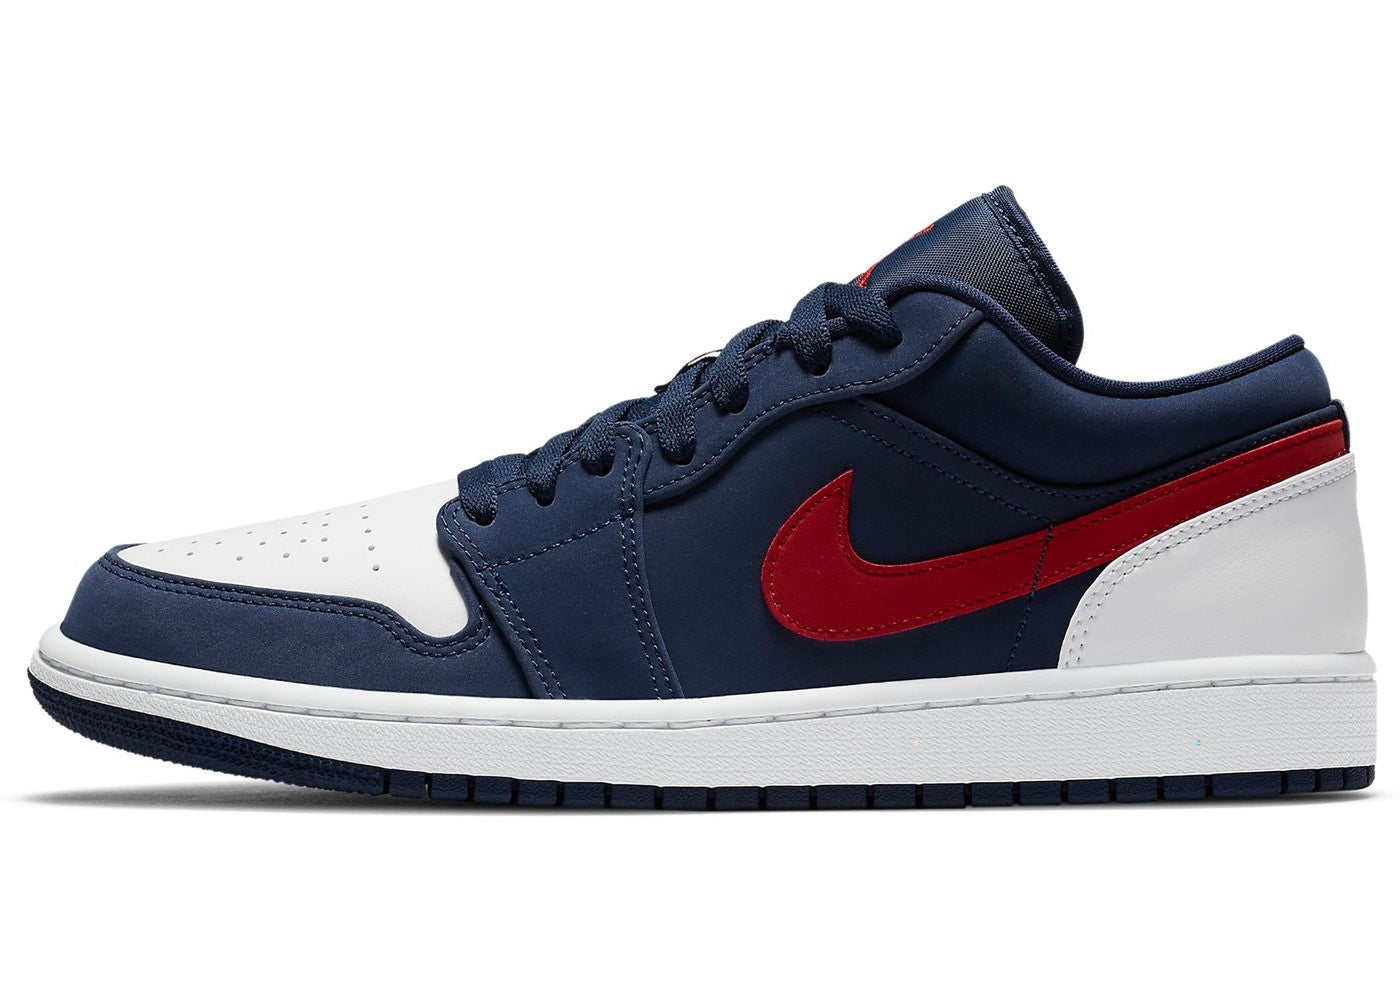 Jordan Air Jordan Low 1 'Blue Gym Red White' - Street Peek